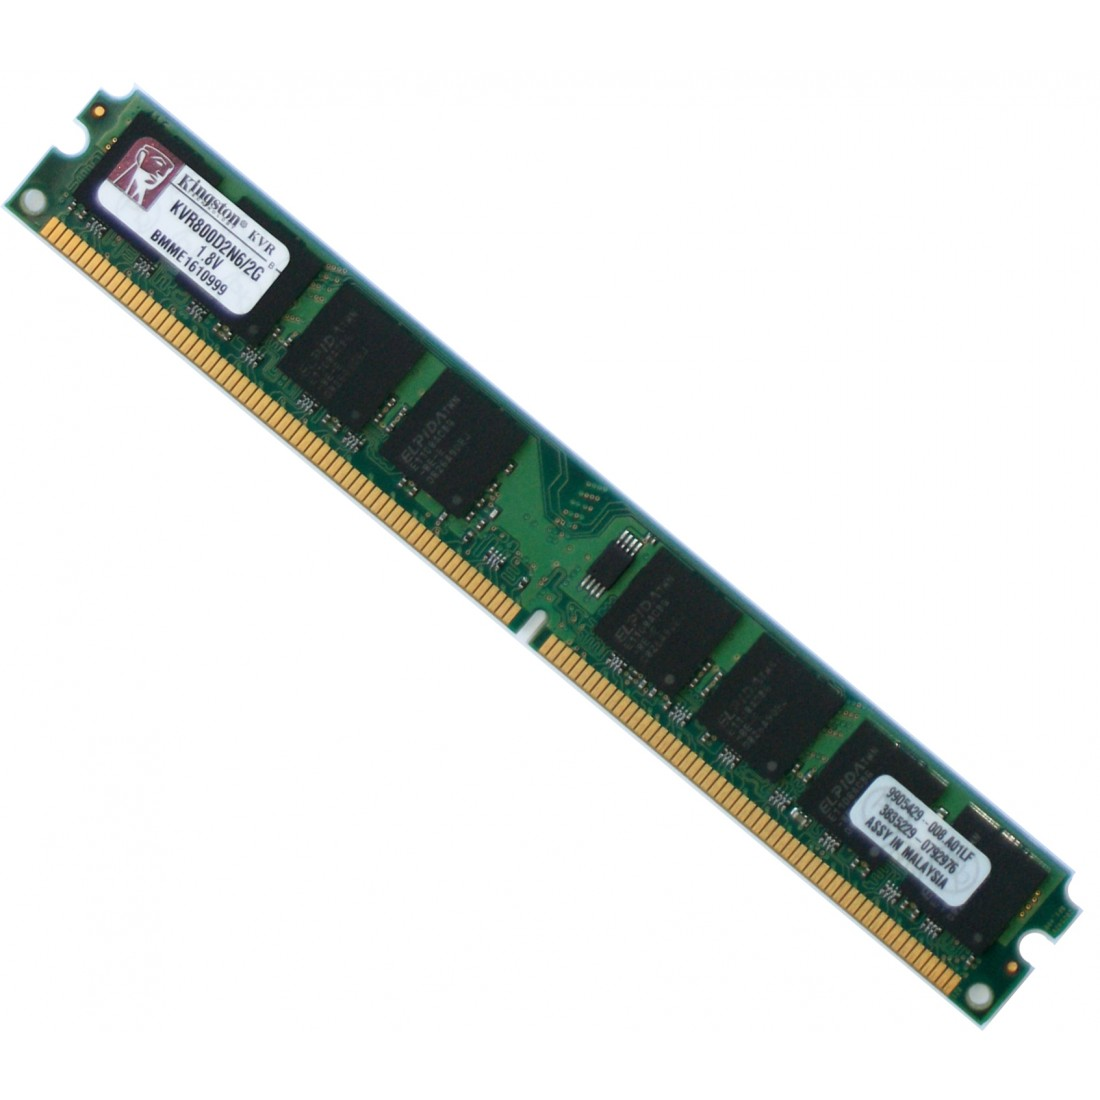 RAM KINGSTON 2GB PC2-6400 DDR2-800 CL6